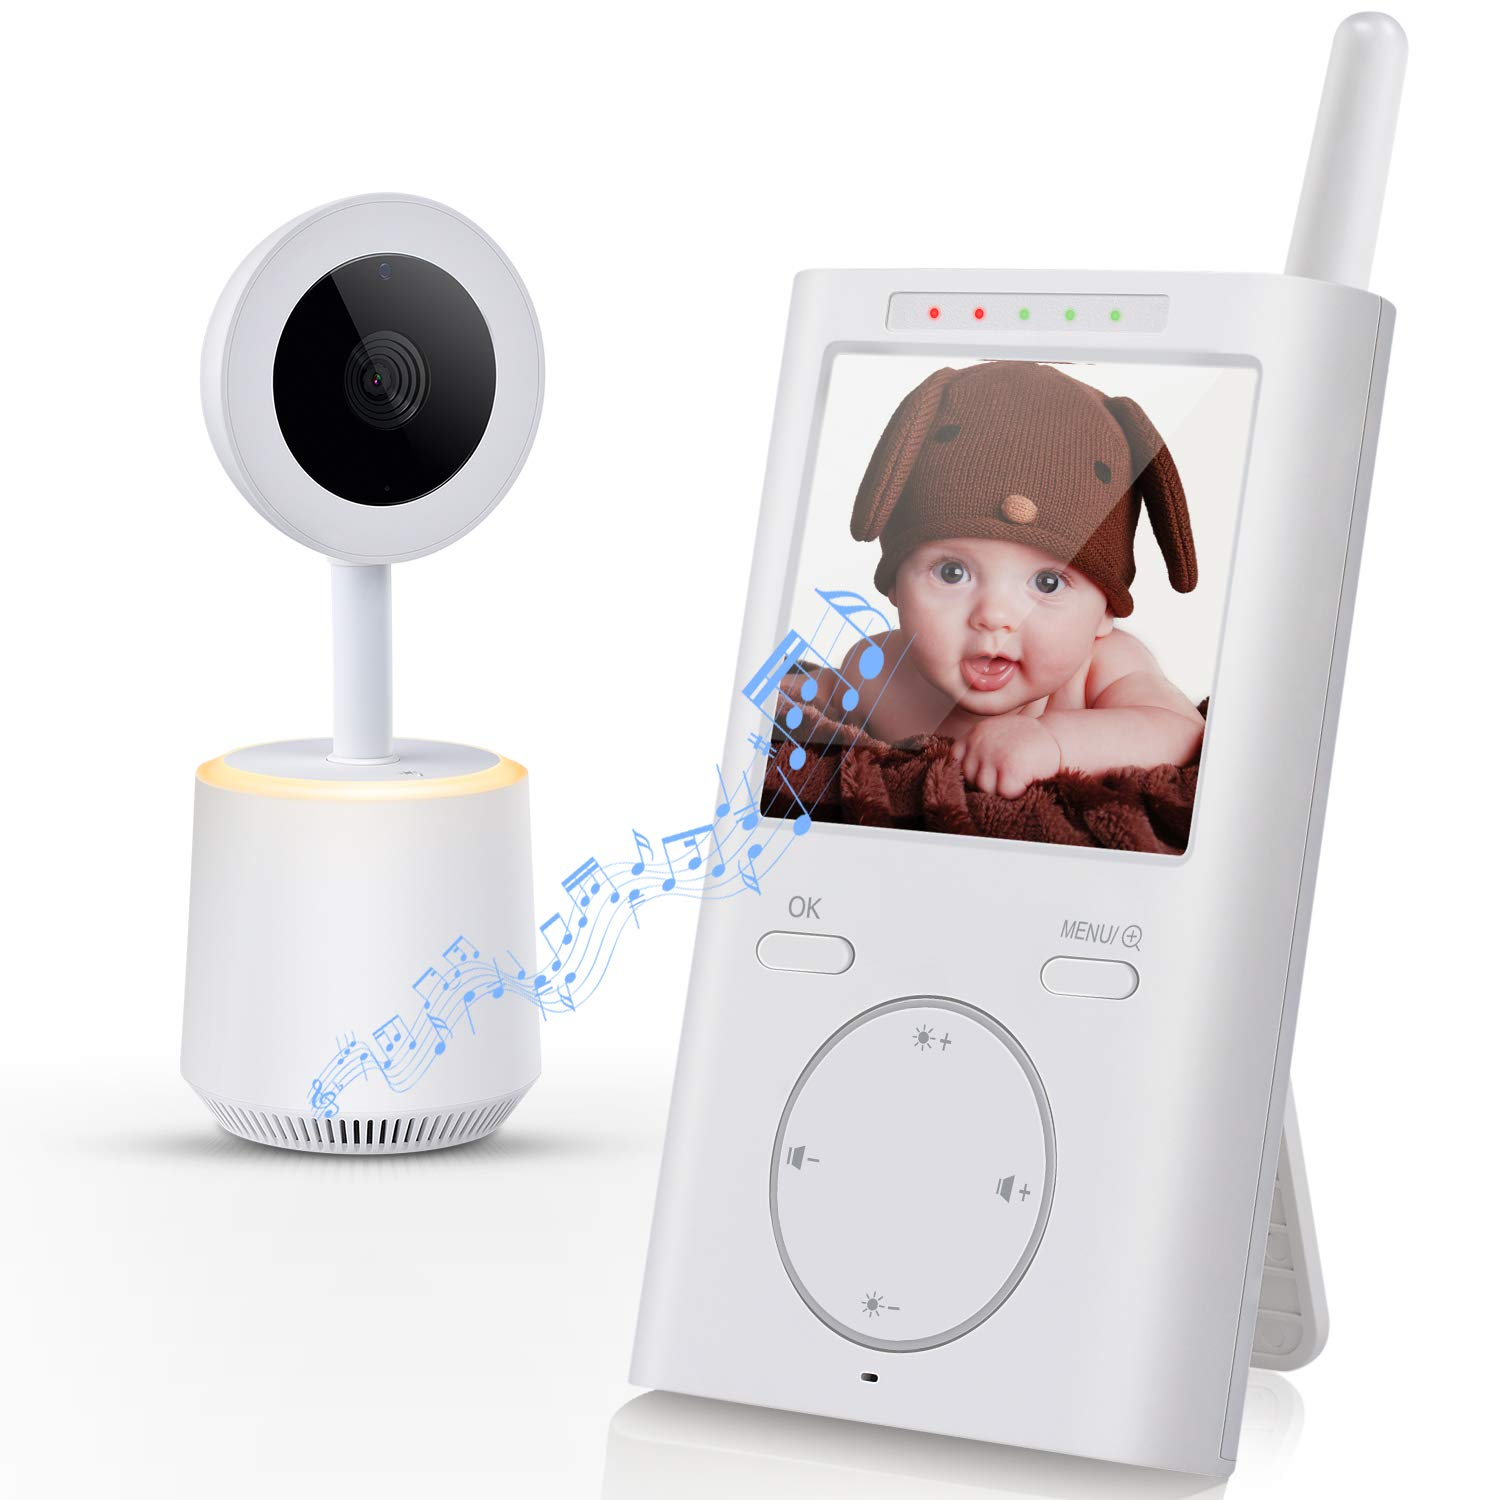 Samxic Video Baby Monitor with 720P Camera, 5 Inches Display, Crying Temperature Alert, Two-Way Talk, No Glow Night Vision, Remote Pan Tilt Zoom, High Privacy Baby Monitor System